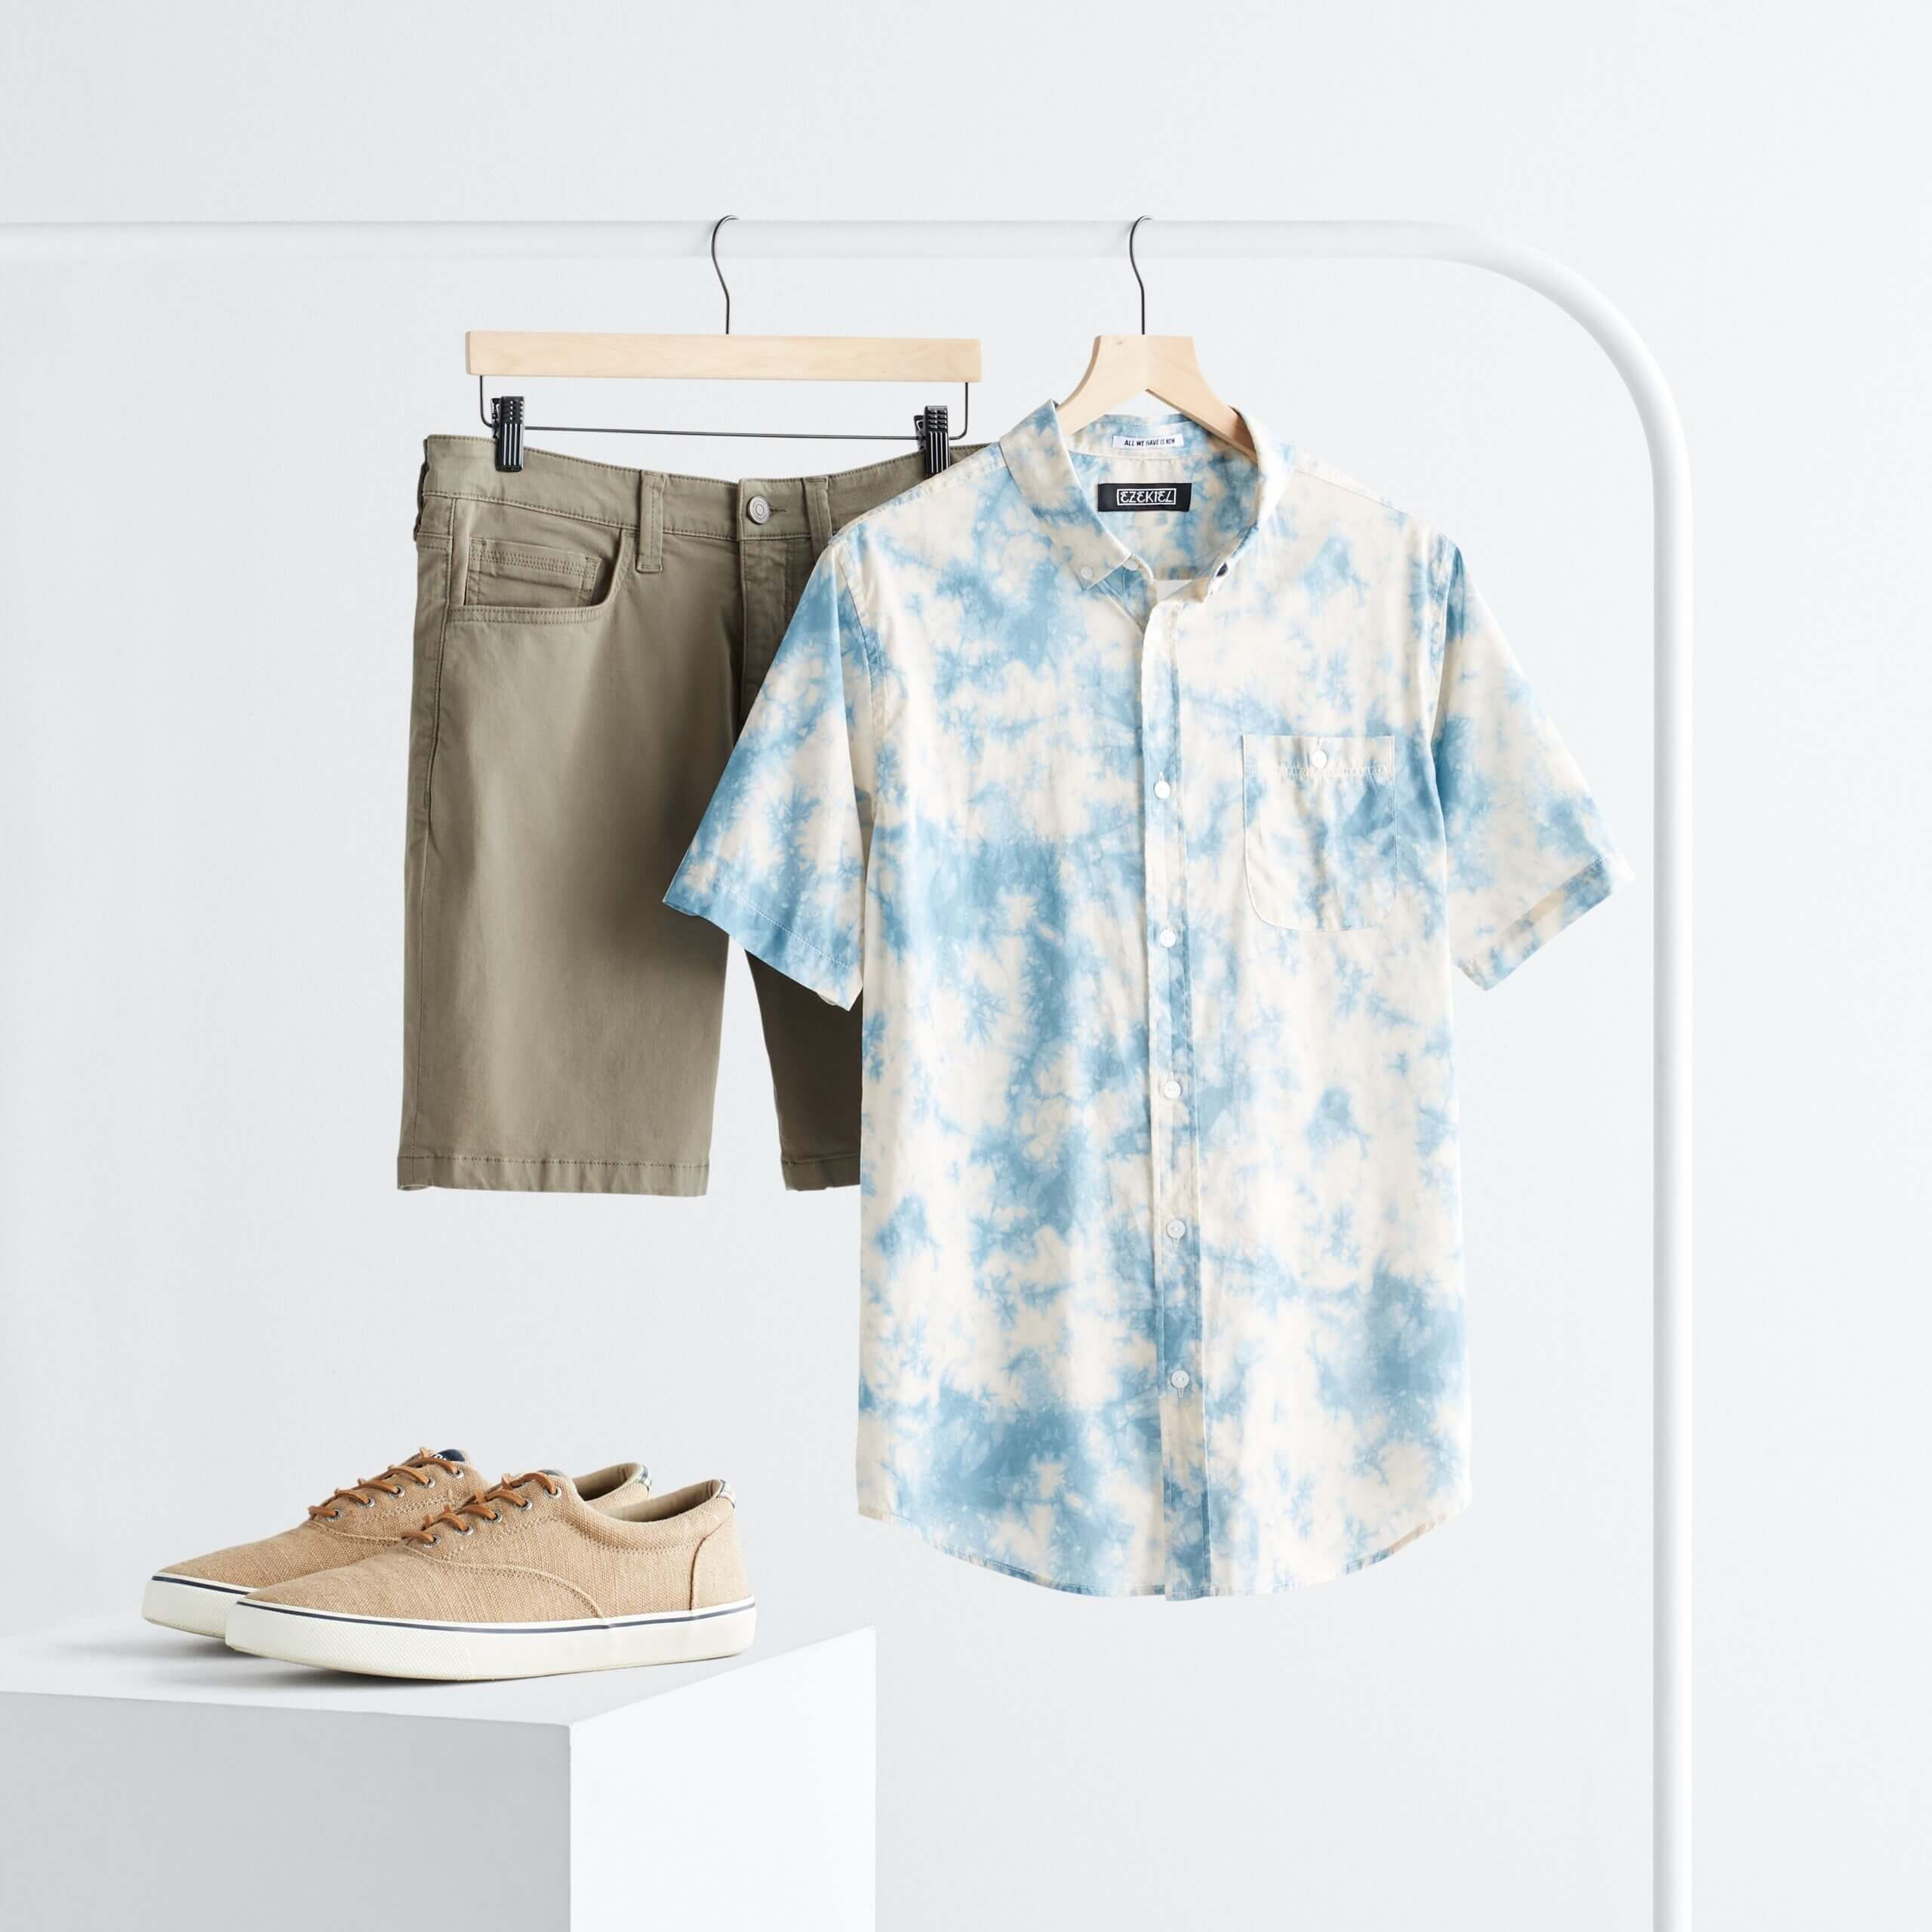 Stitch Fix men's rack image with blue tie-dye button-down short sleeve shirt and olive shorts hanging on white rack next to tan leather sneakers on white block.